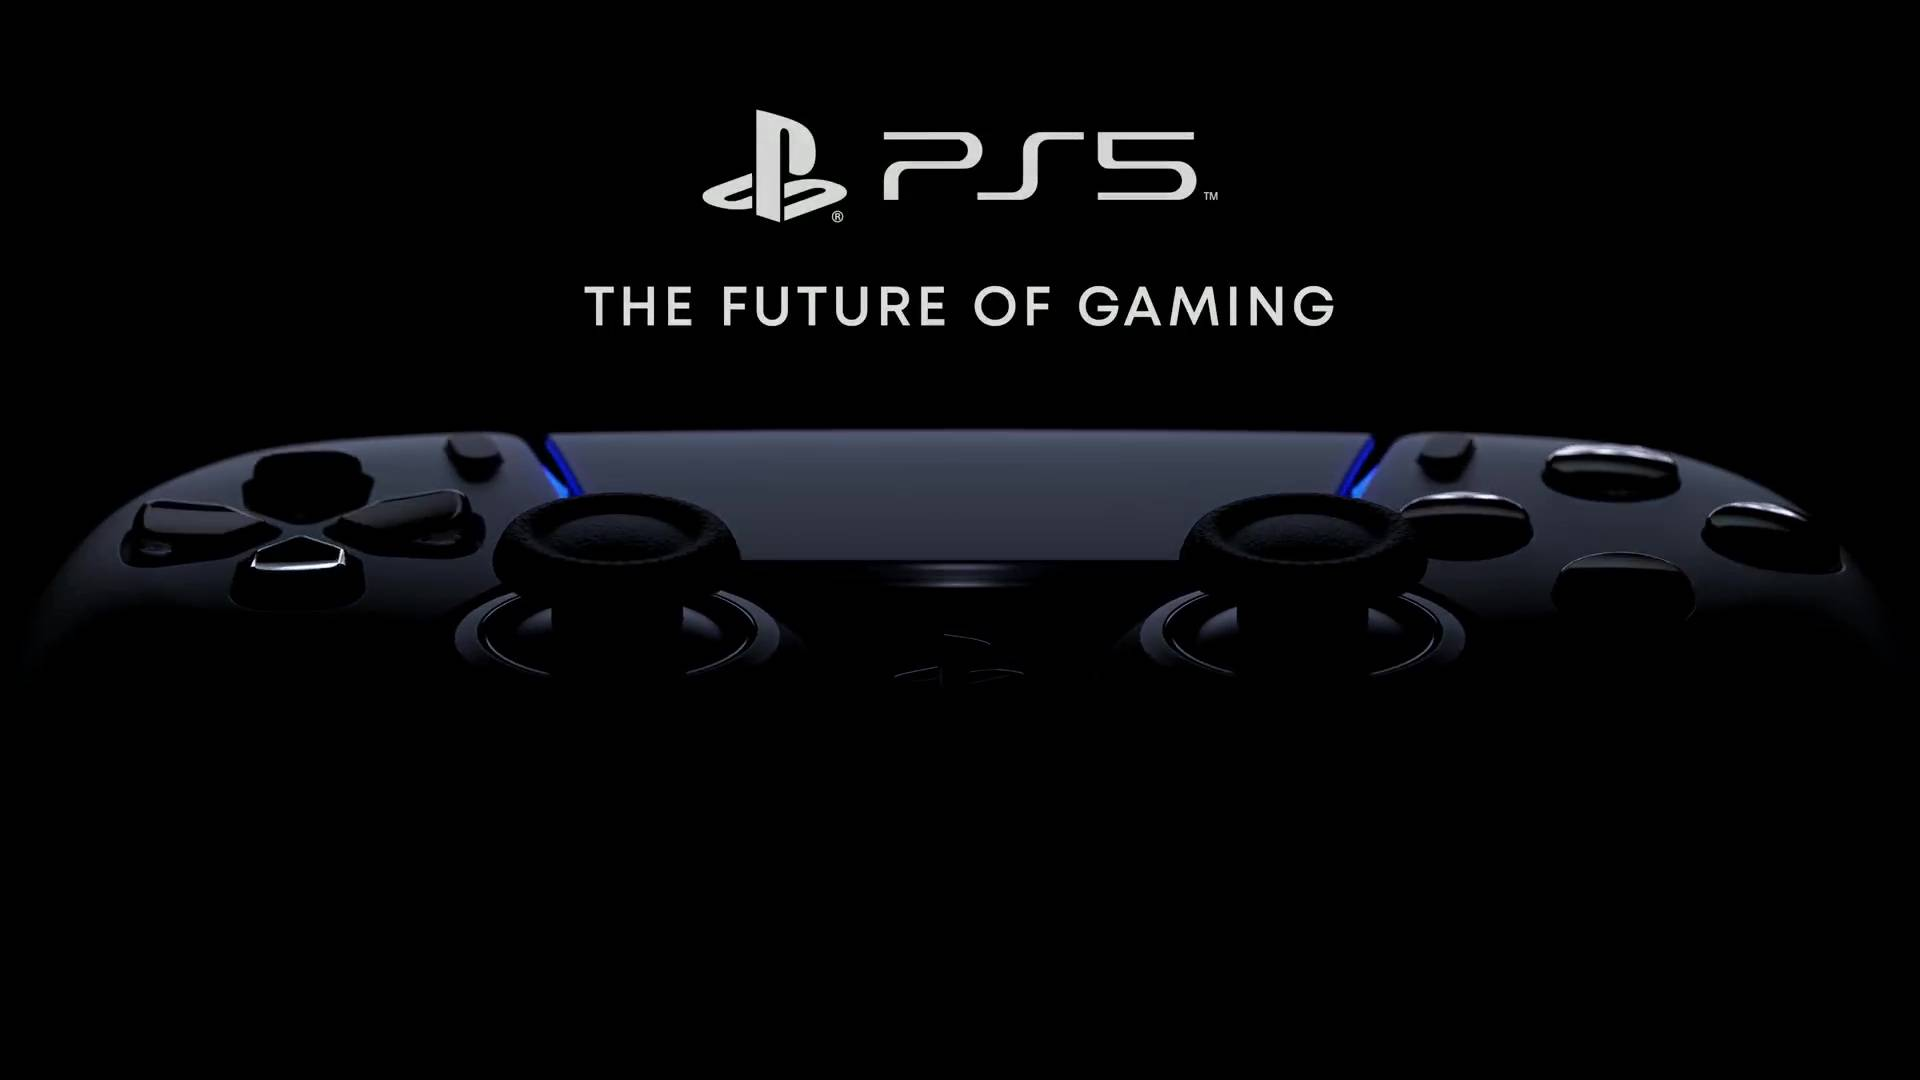 PS5 PlayStation 5 The Future of Gaming